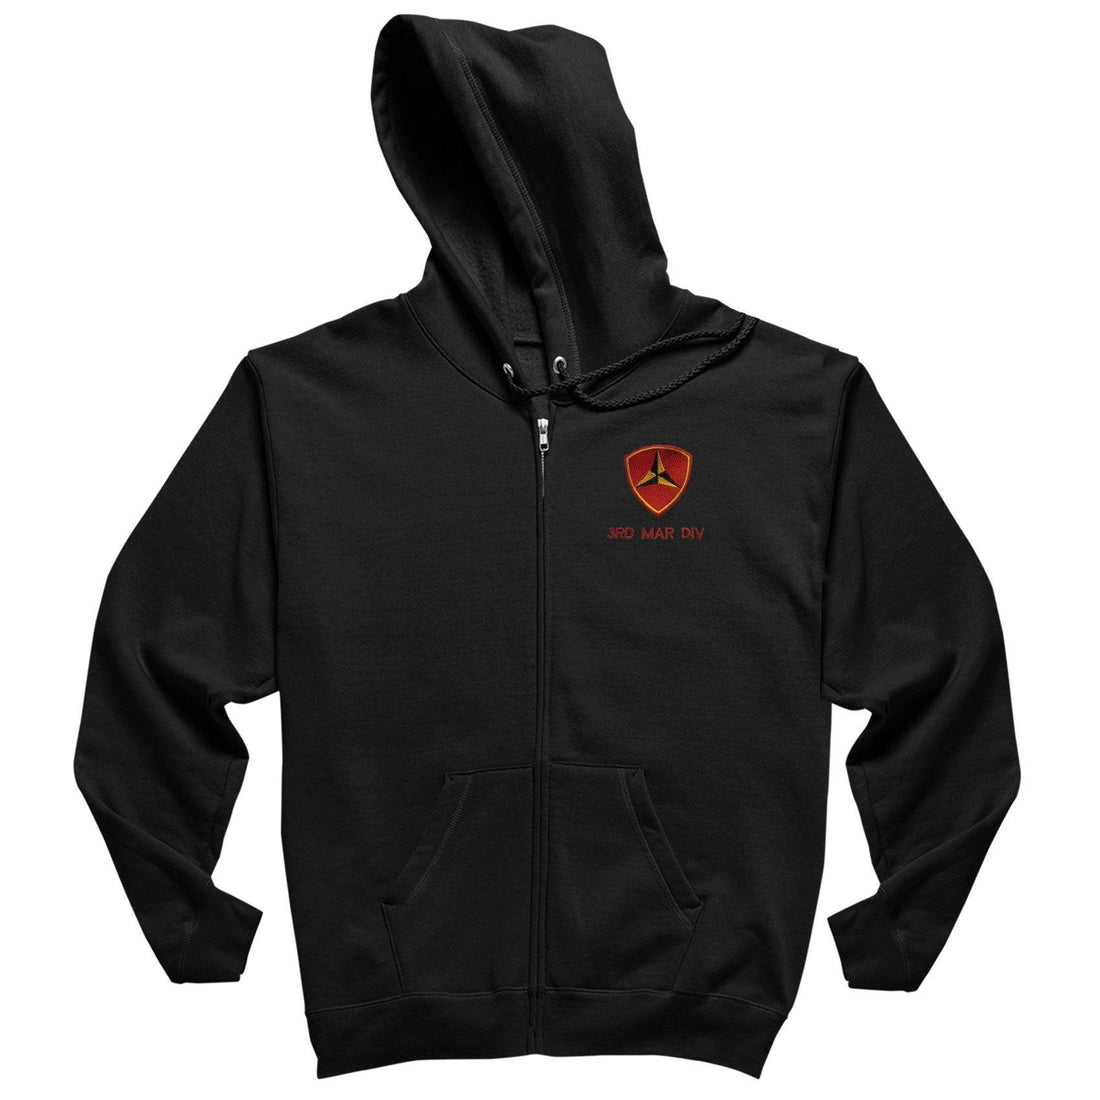 3rd Mar Div Heavy Blend™ Embroidered Full-Zip Hoodie - Marine Corps Direct